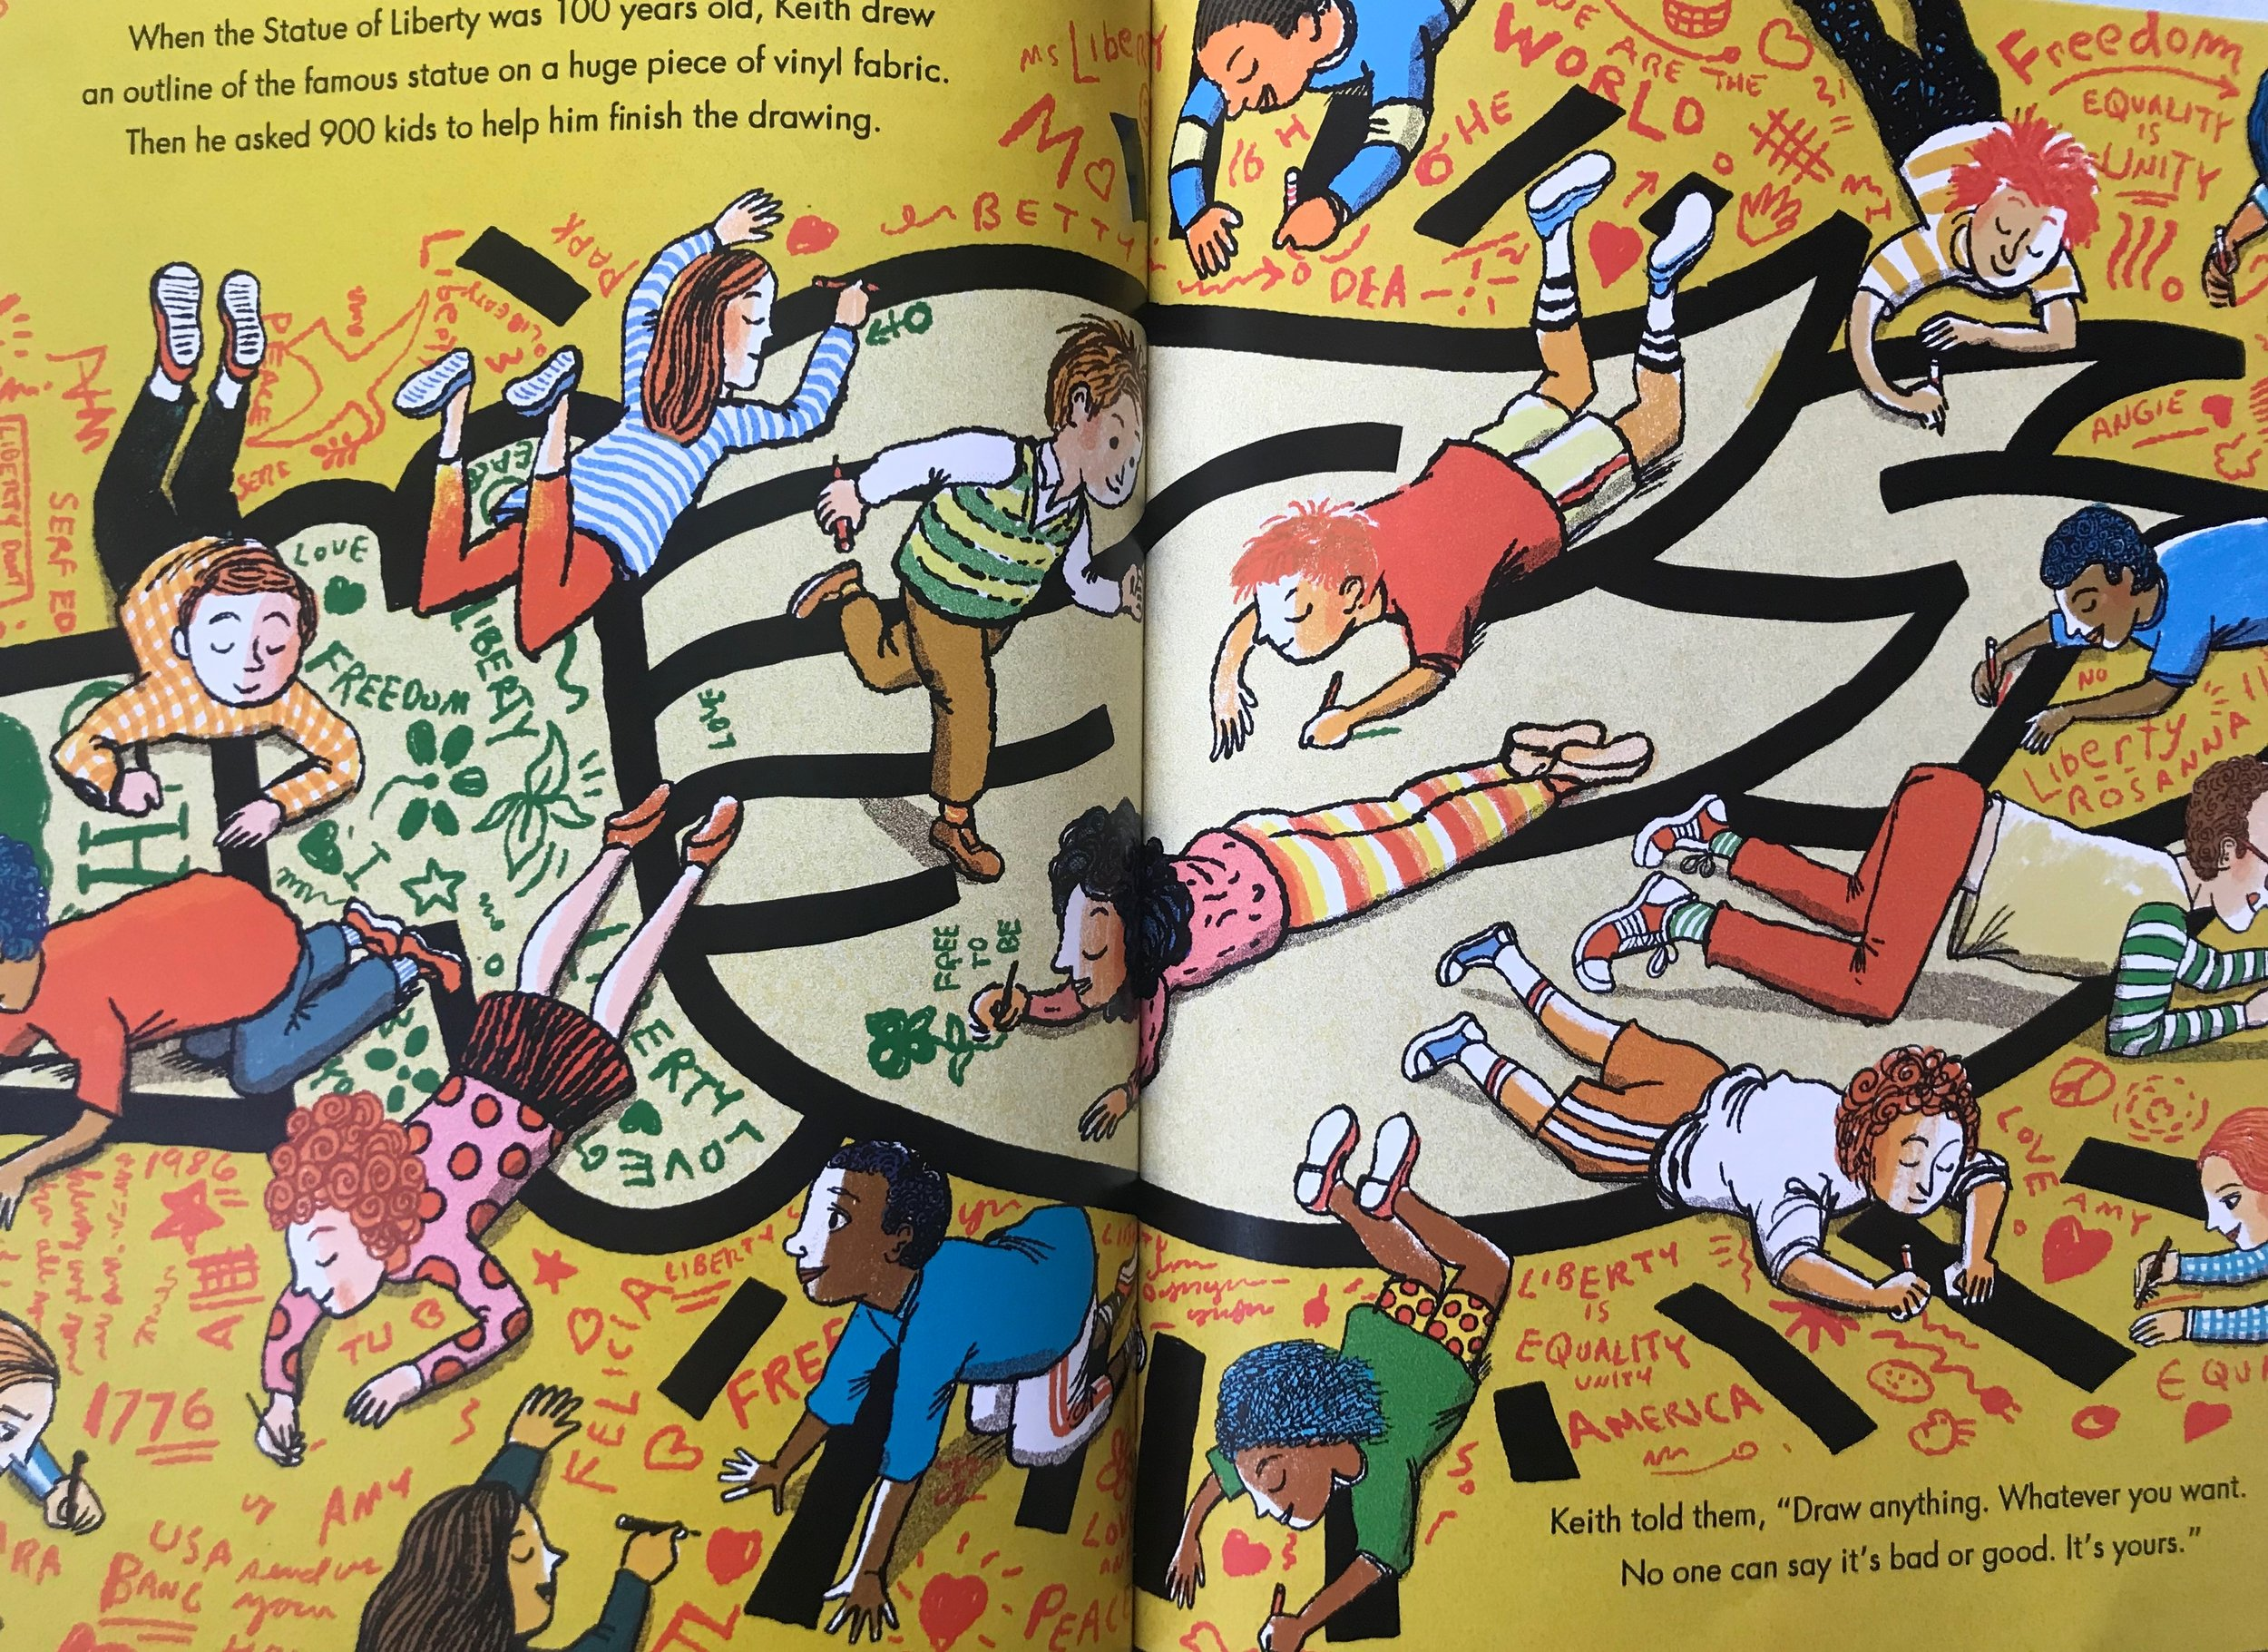 From the book Keith Haring: The Boy Who Just Kept Drawing